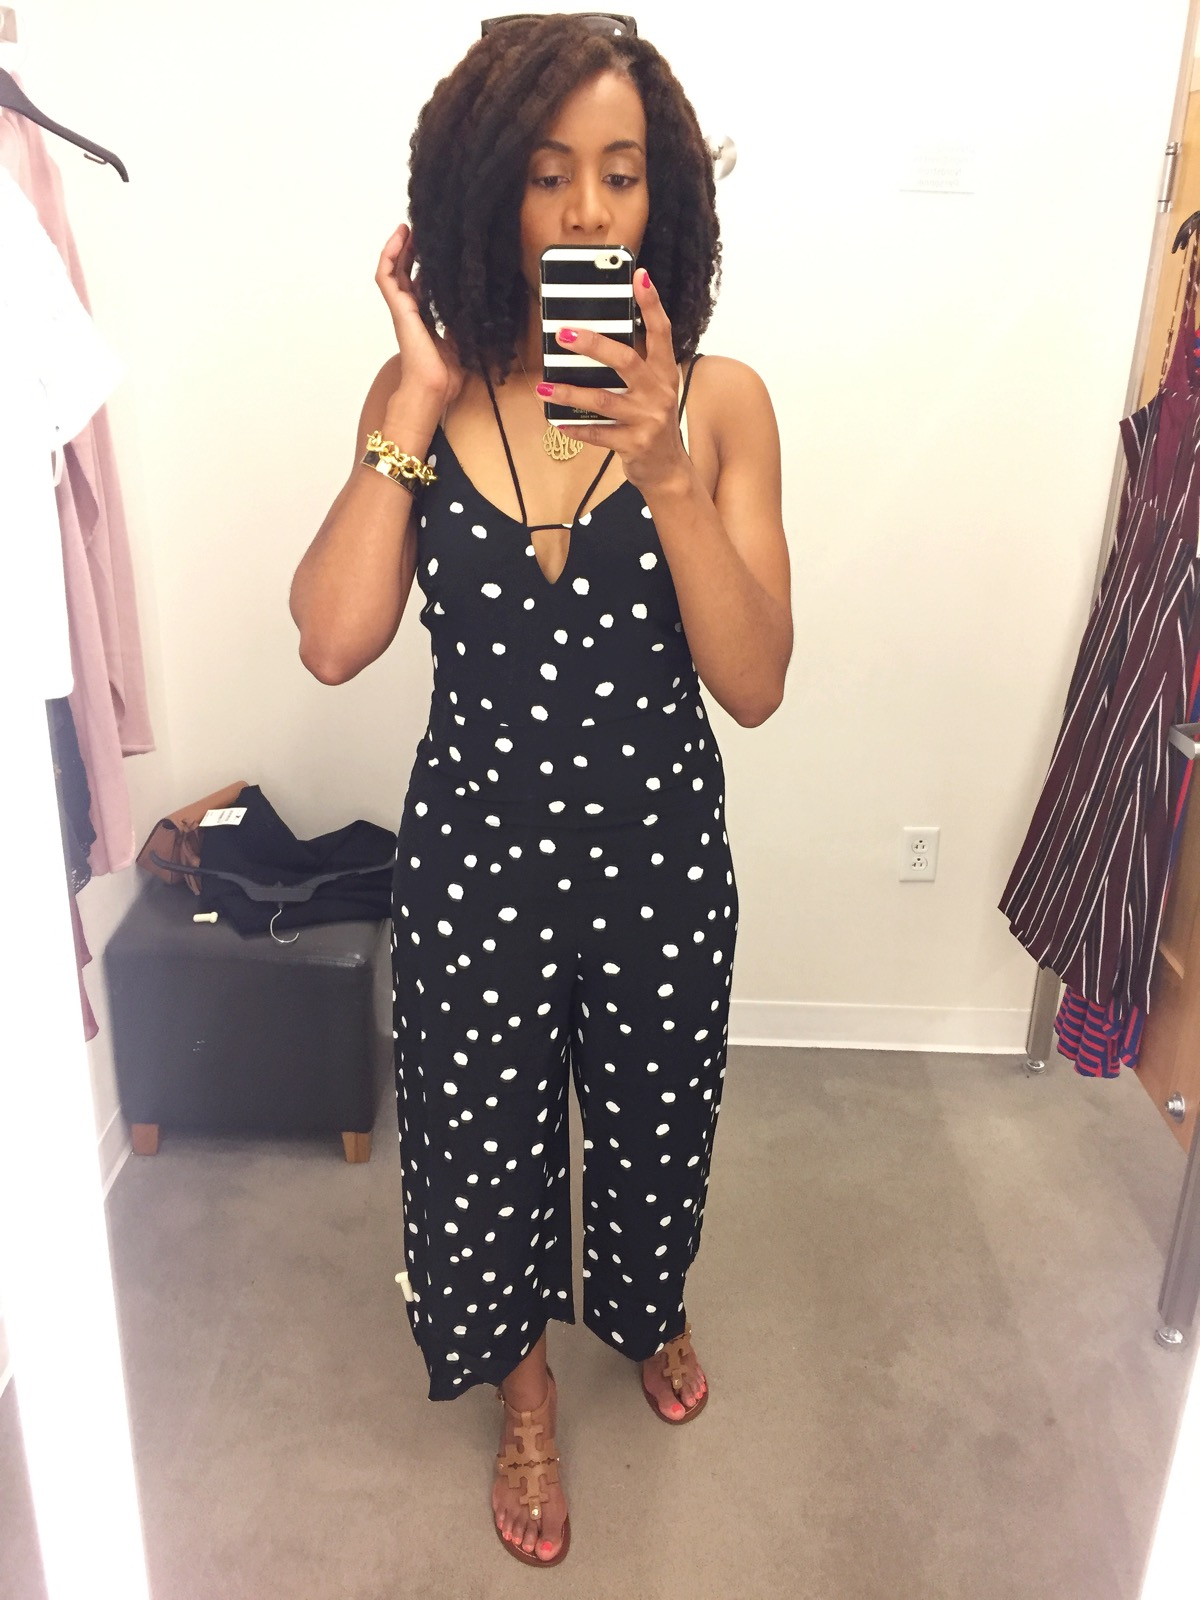 88a16effef7 MOODY GIRL IN STYLE  Moody Style  Nordstrom Anniversary Sale Fitting Room  Reviews (Part II)